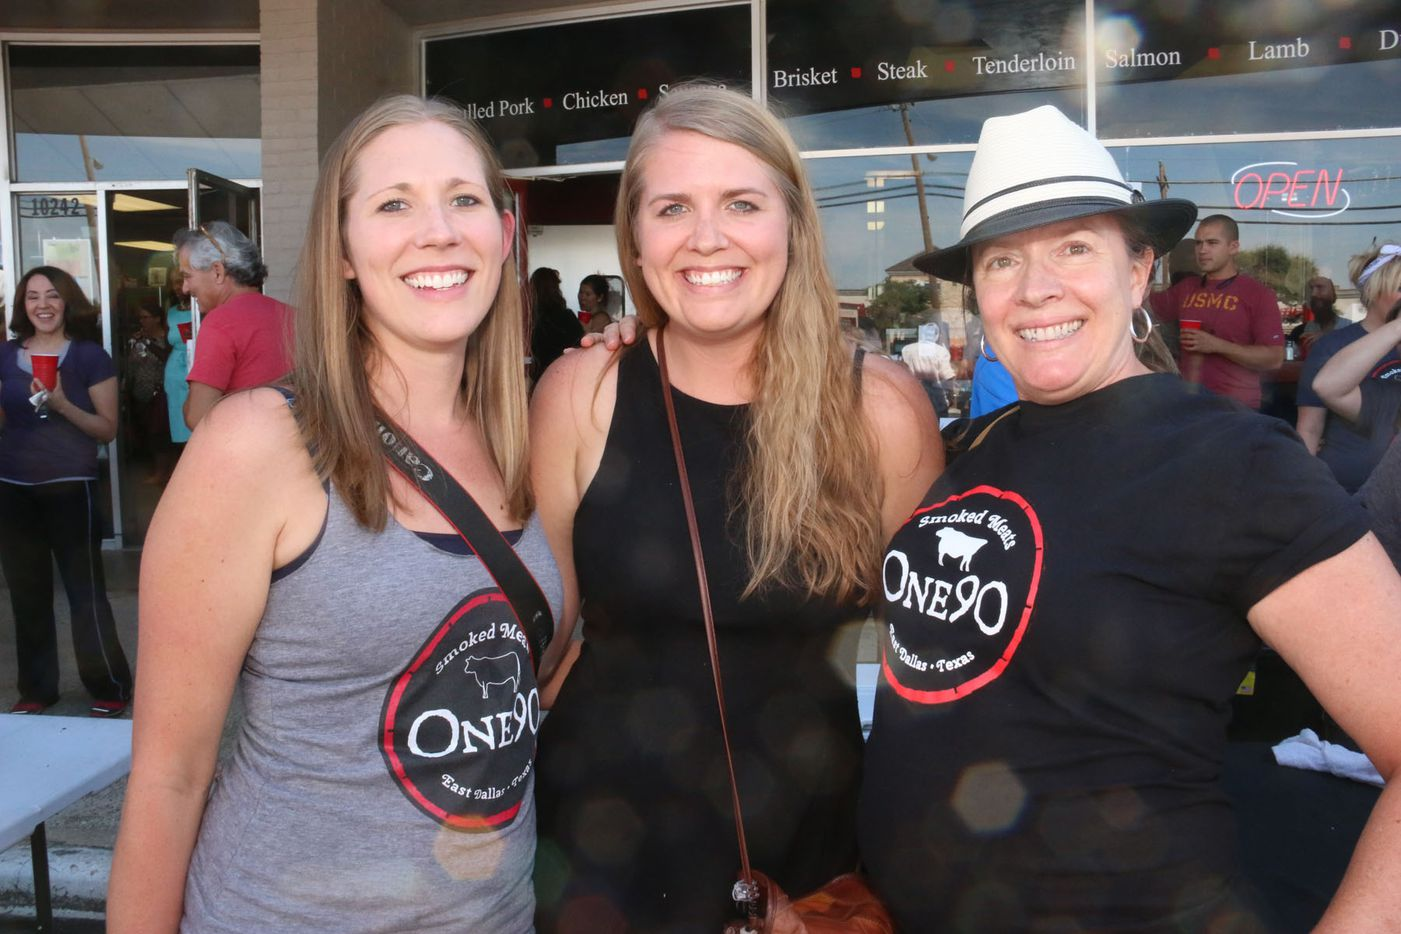 Kelly Guerra, Susie Stillwell and Krista de la Harpe at One90 Smoked Meats grand opening in East Dallas on October 4, 2015.